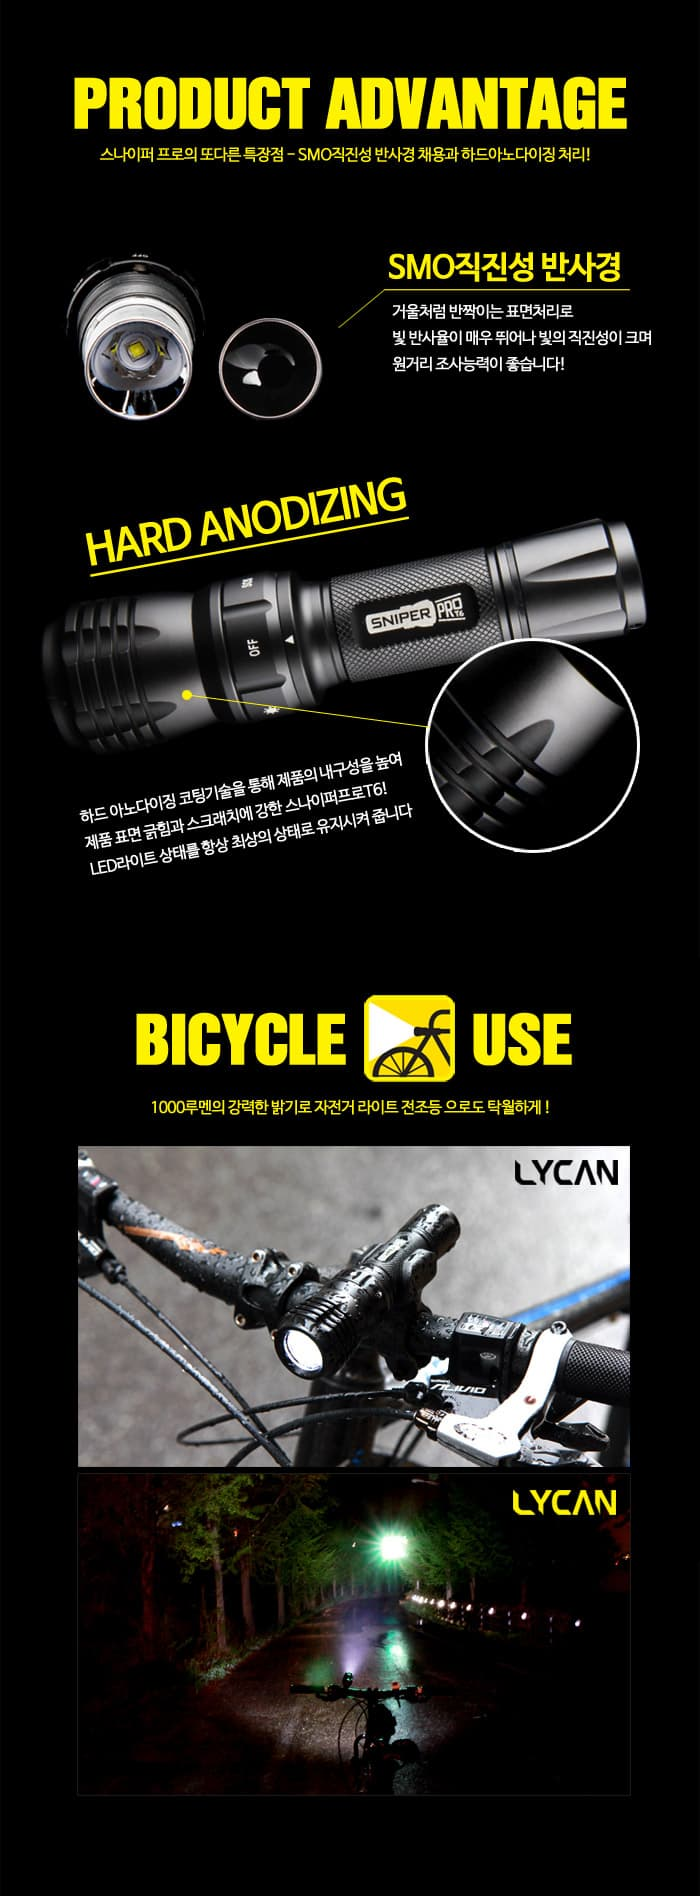 Bicycle light use